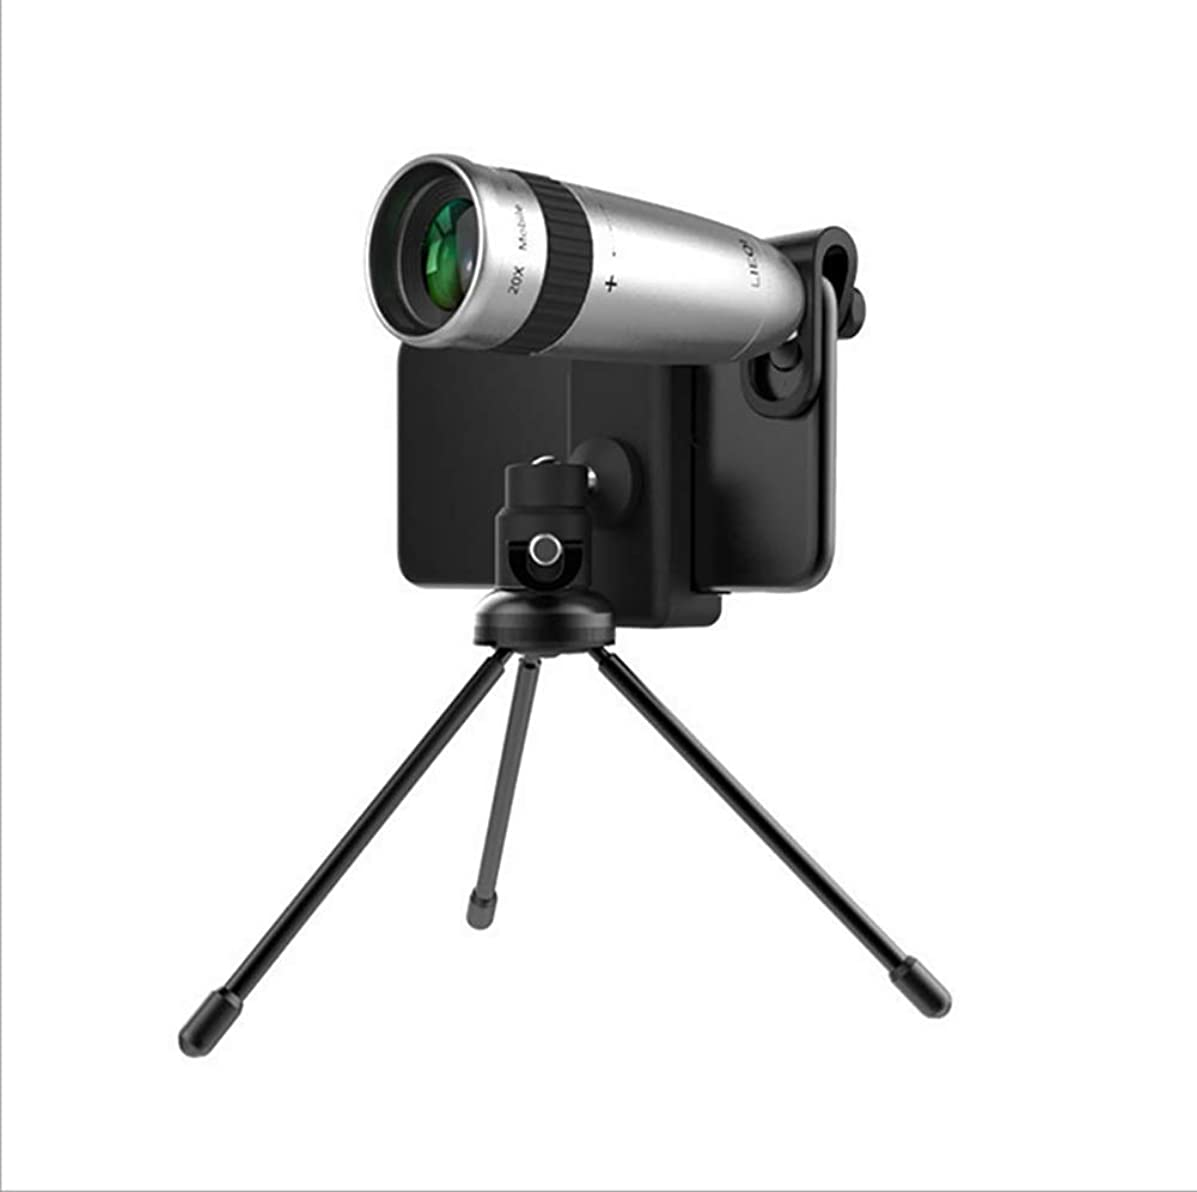 20X Mobile Phone Telephoto Telescope Head Zoom External Camera HD SLR Phone Lens Universal Clip Tripod for iPhone, Samsung, LG,HTC,Huawei and Other Smartphone